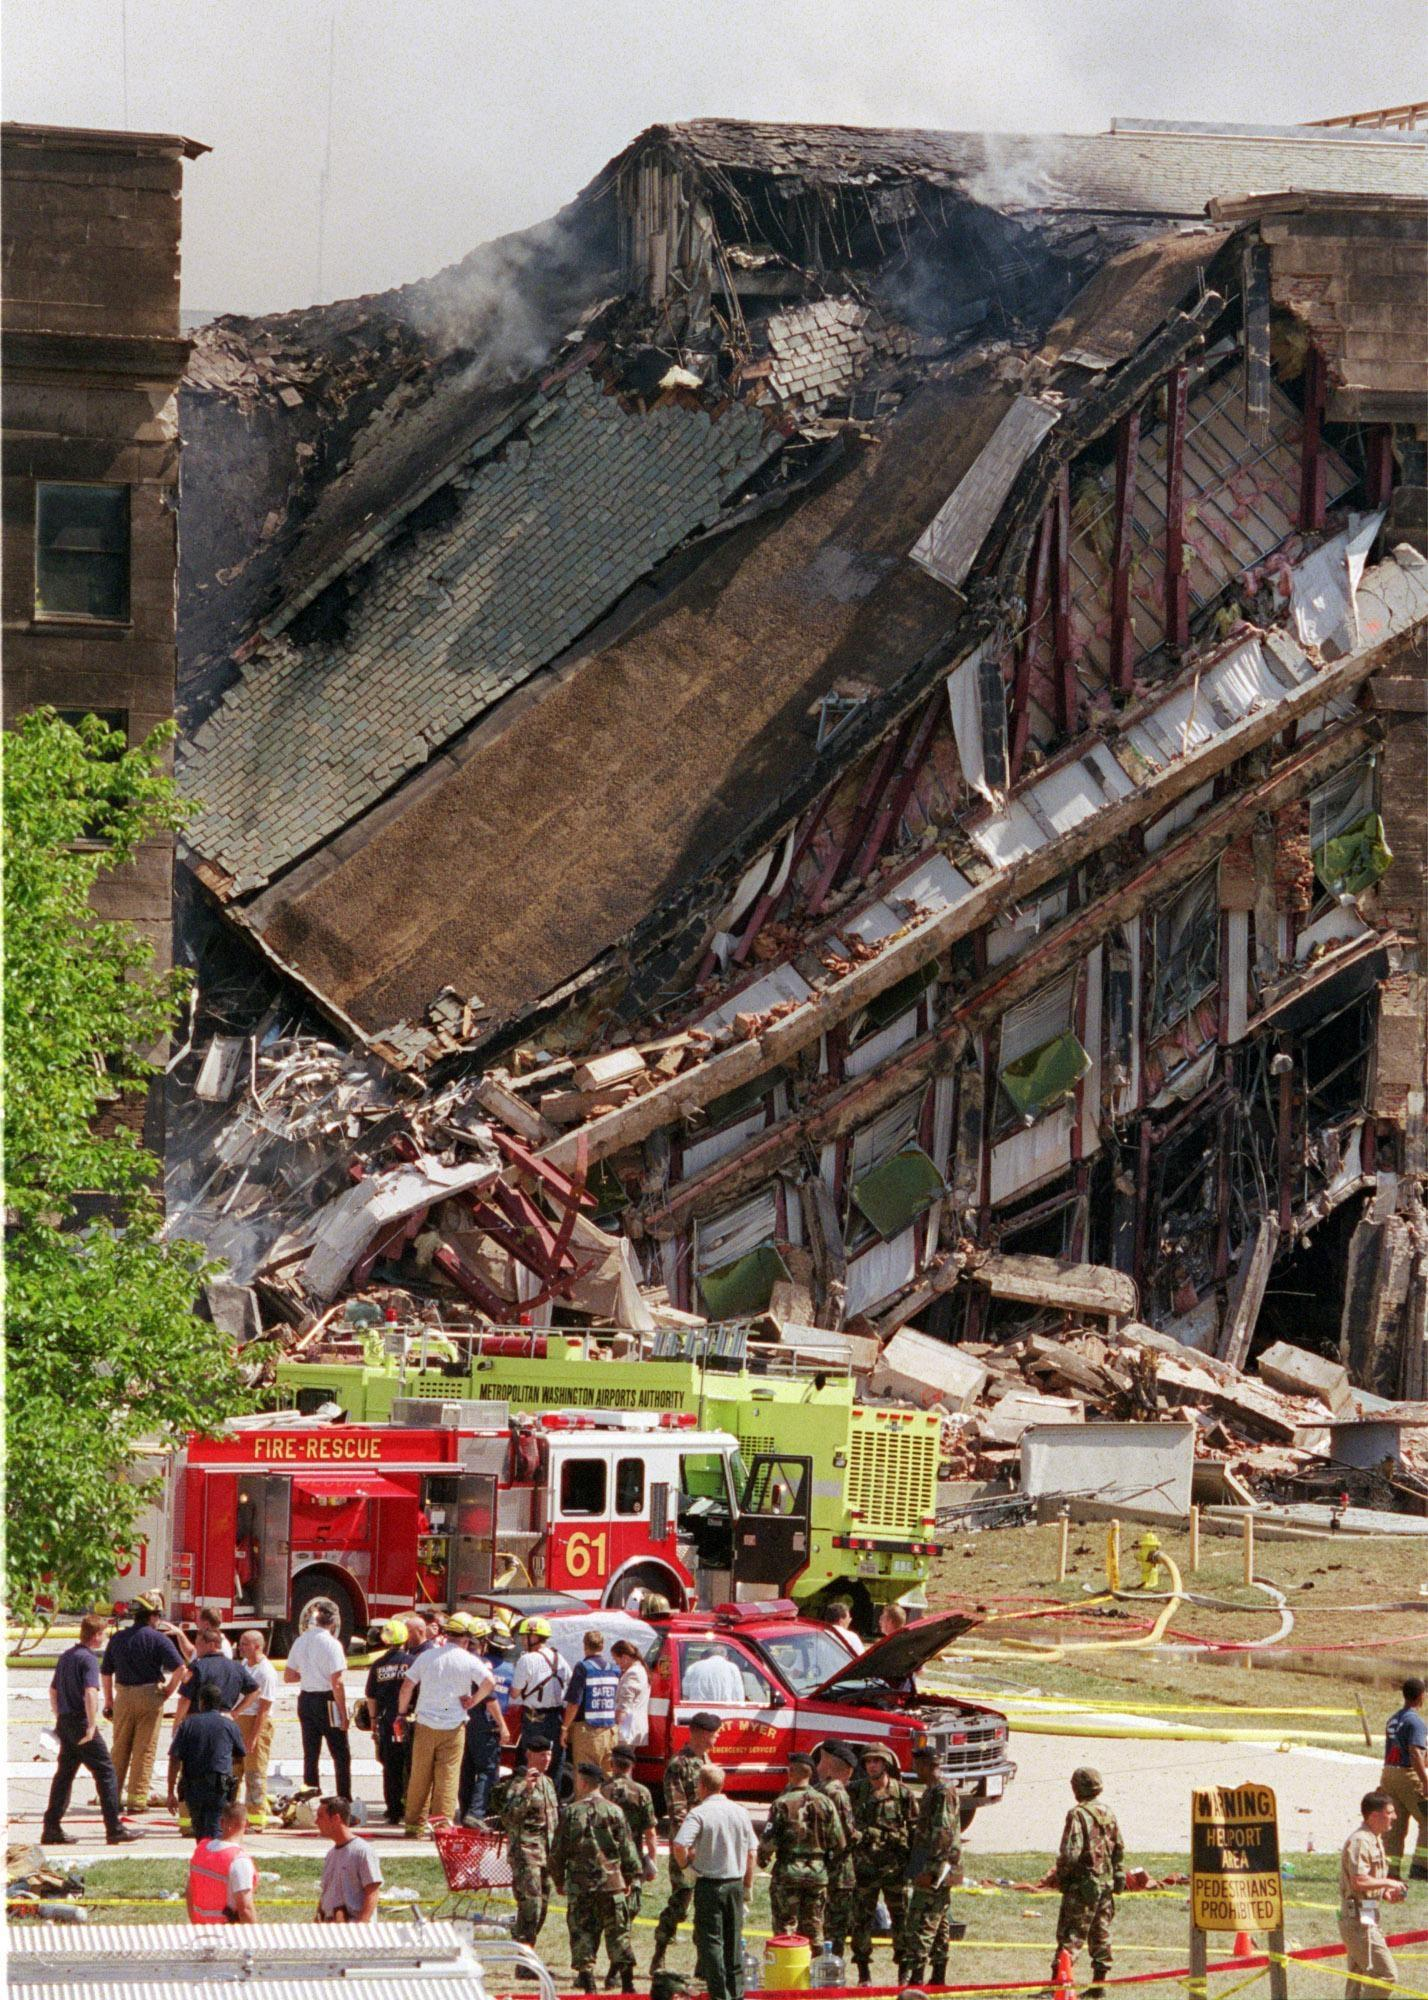 Rescue workers look over damage at the Pentagon Tuesday, Sept. 11, 2001. The Pentagon burst into flames and a portion of one side of the five-sided structure collapsed after the building was hit by an aircraft in an apparent terrorist attack.